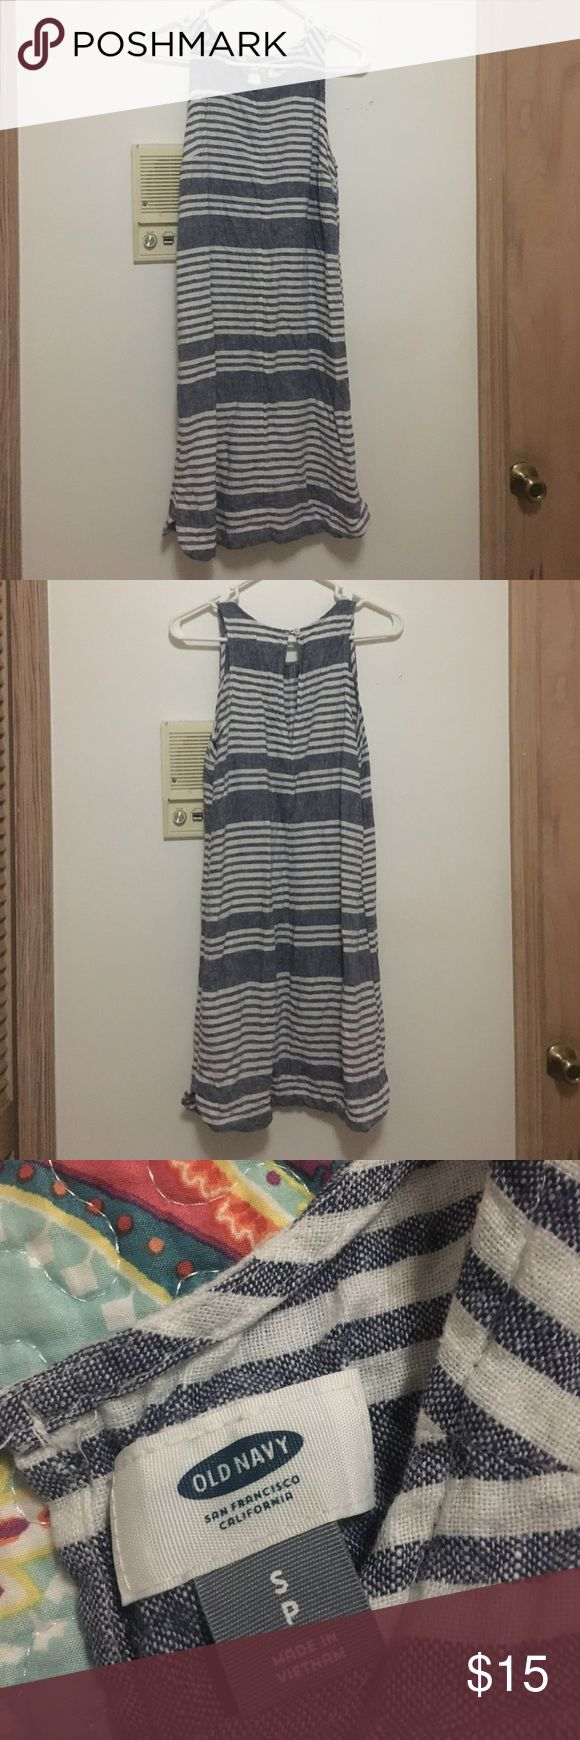 Old Navy Striped Dress Casual striped dress, pair it with your favorite sandals. Old Navy Dresses Midi